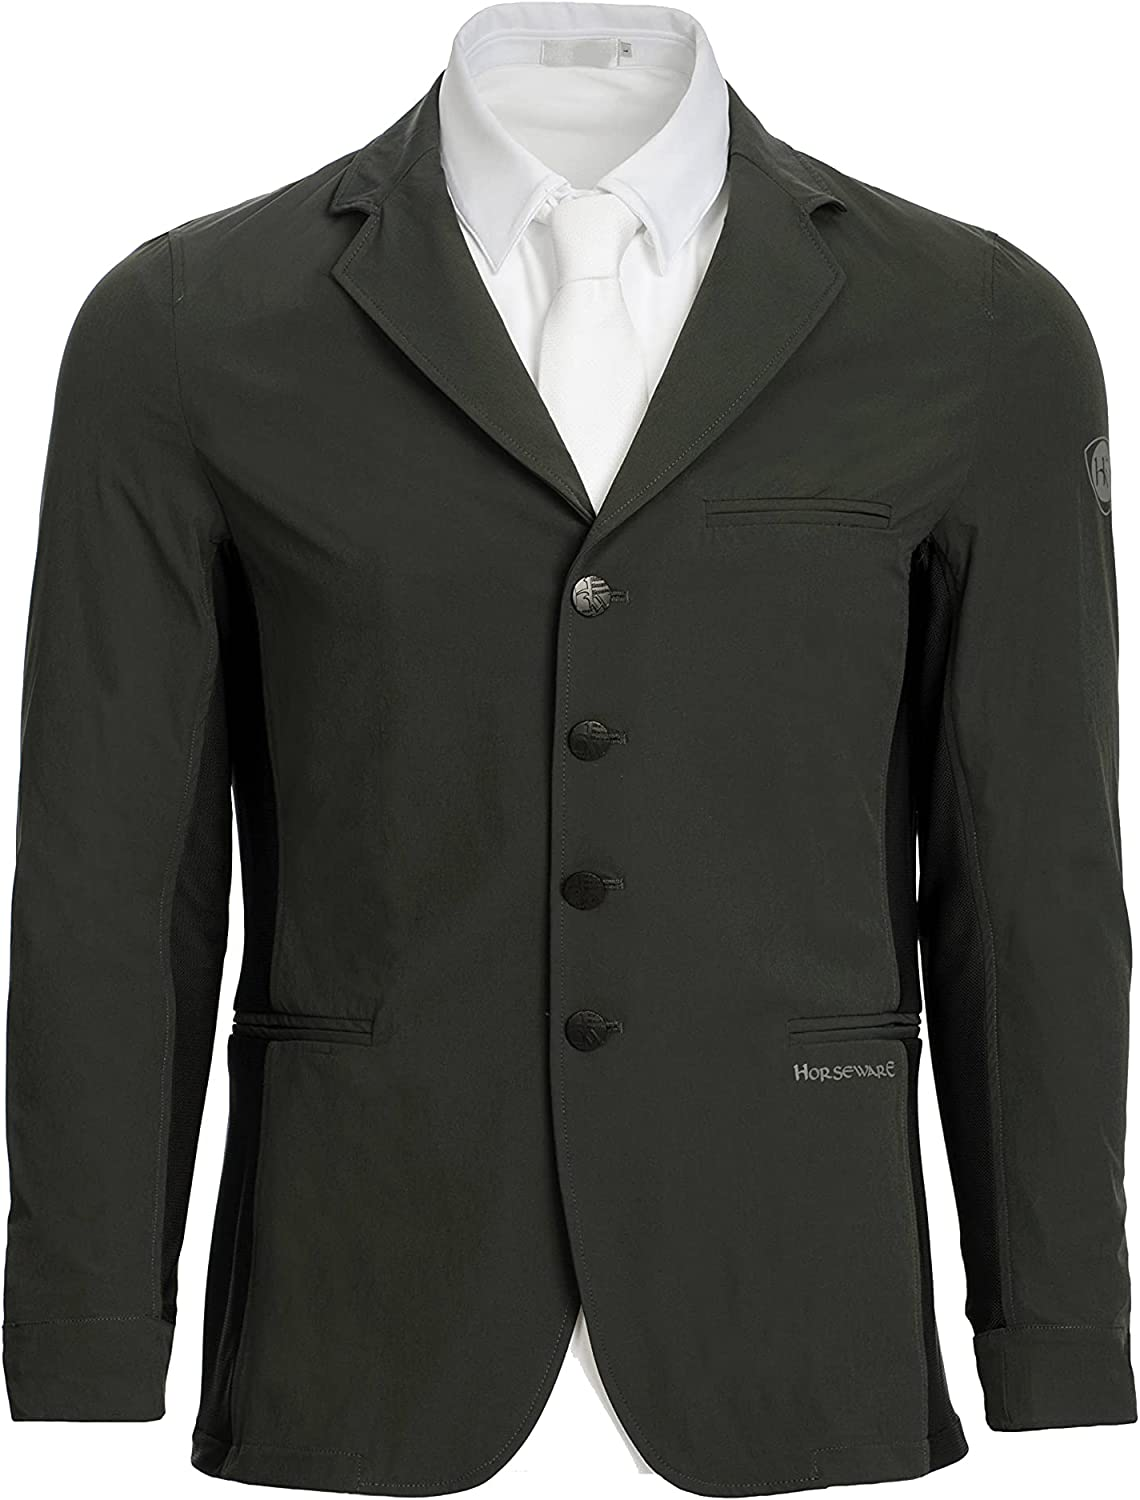 1 year warranty Horseware Mens Our shop OFFers the best service Air Competition MK2 Jacket